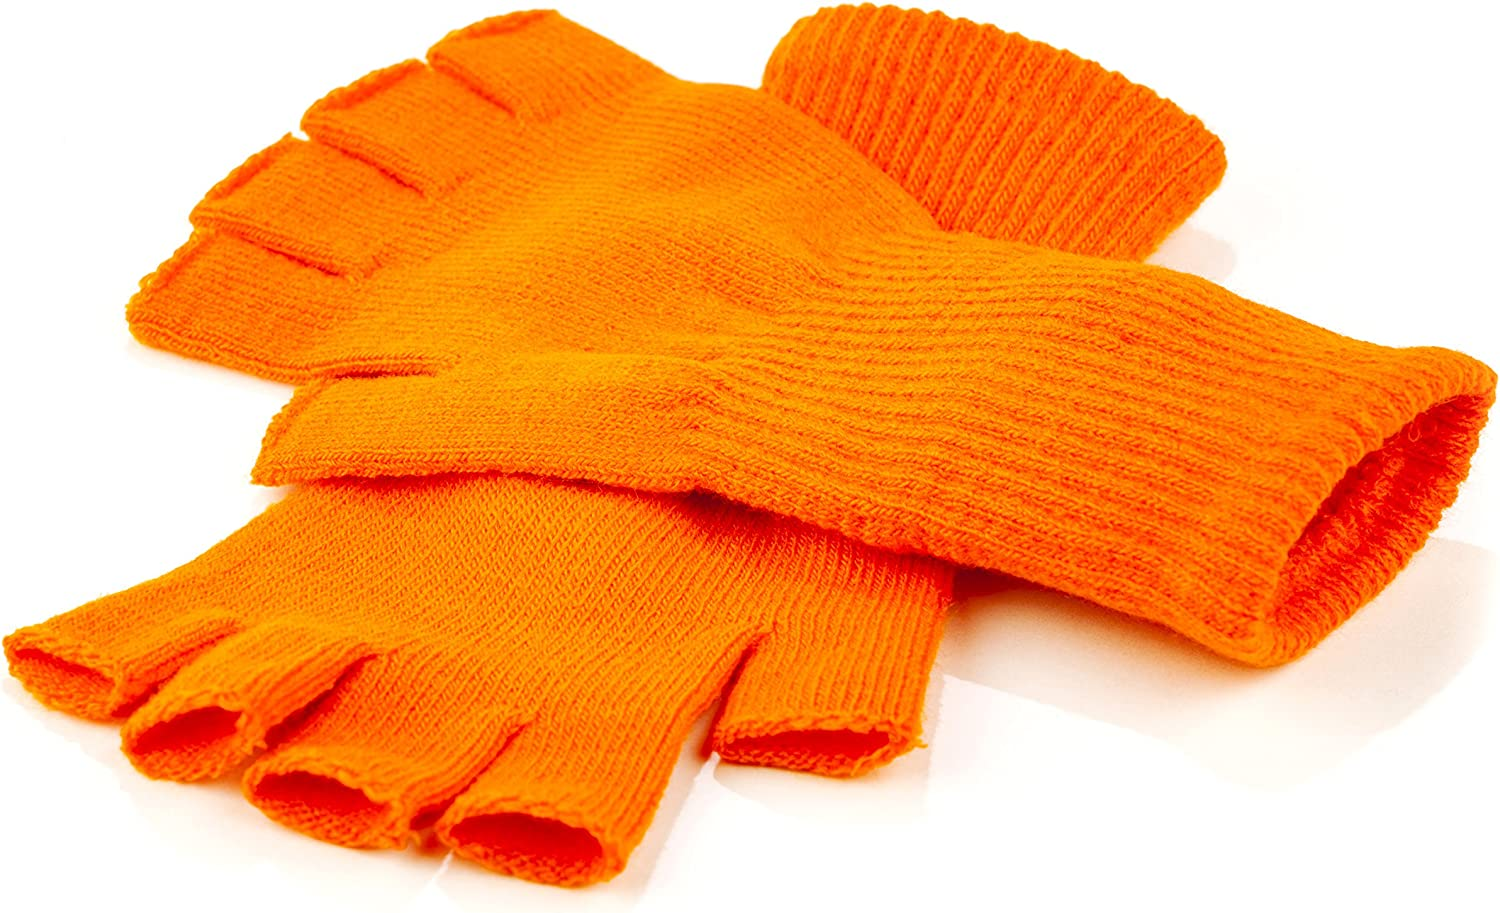 Funny Guy Mugs Warm Stretchy Knit Fingerless Gloves for Women and Men, Multiple Colors Available, One Size Fits Most